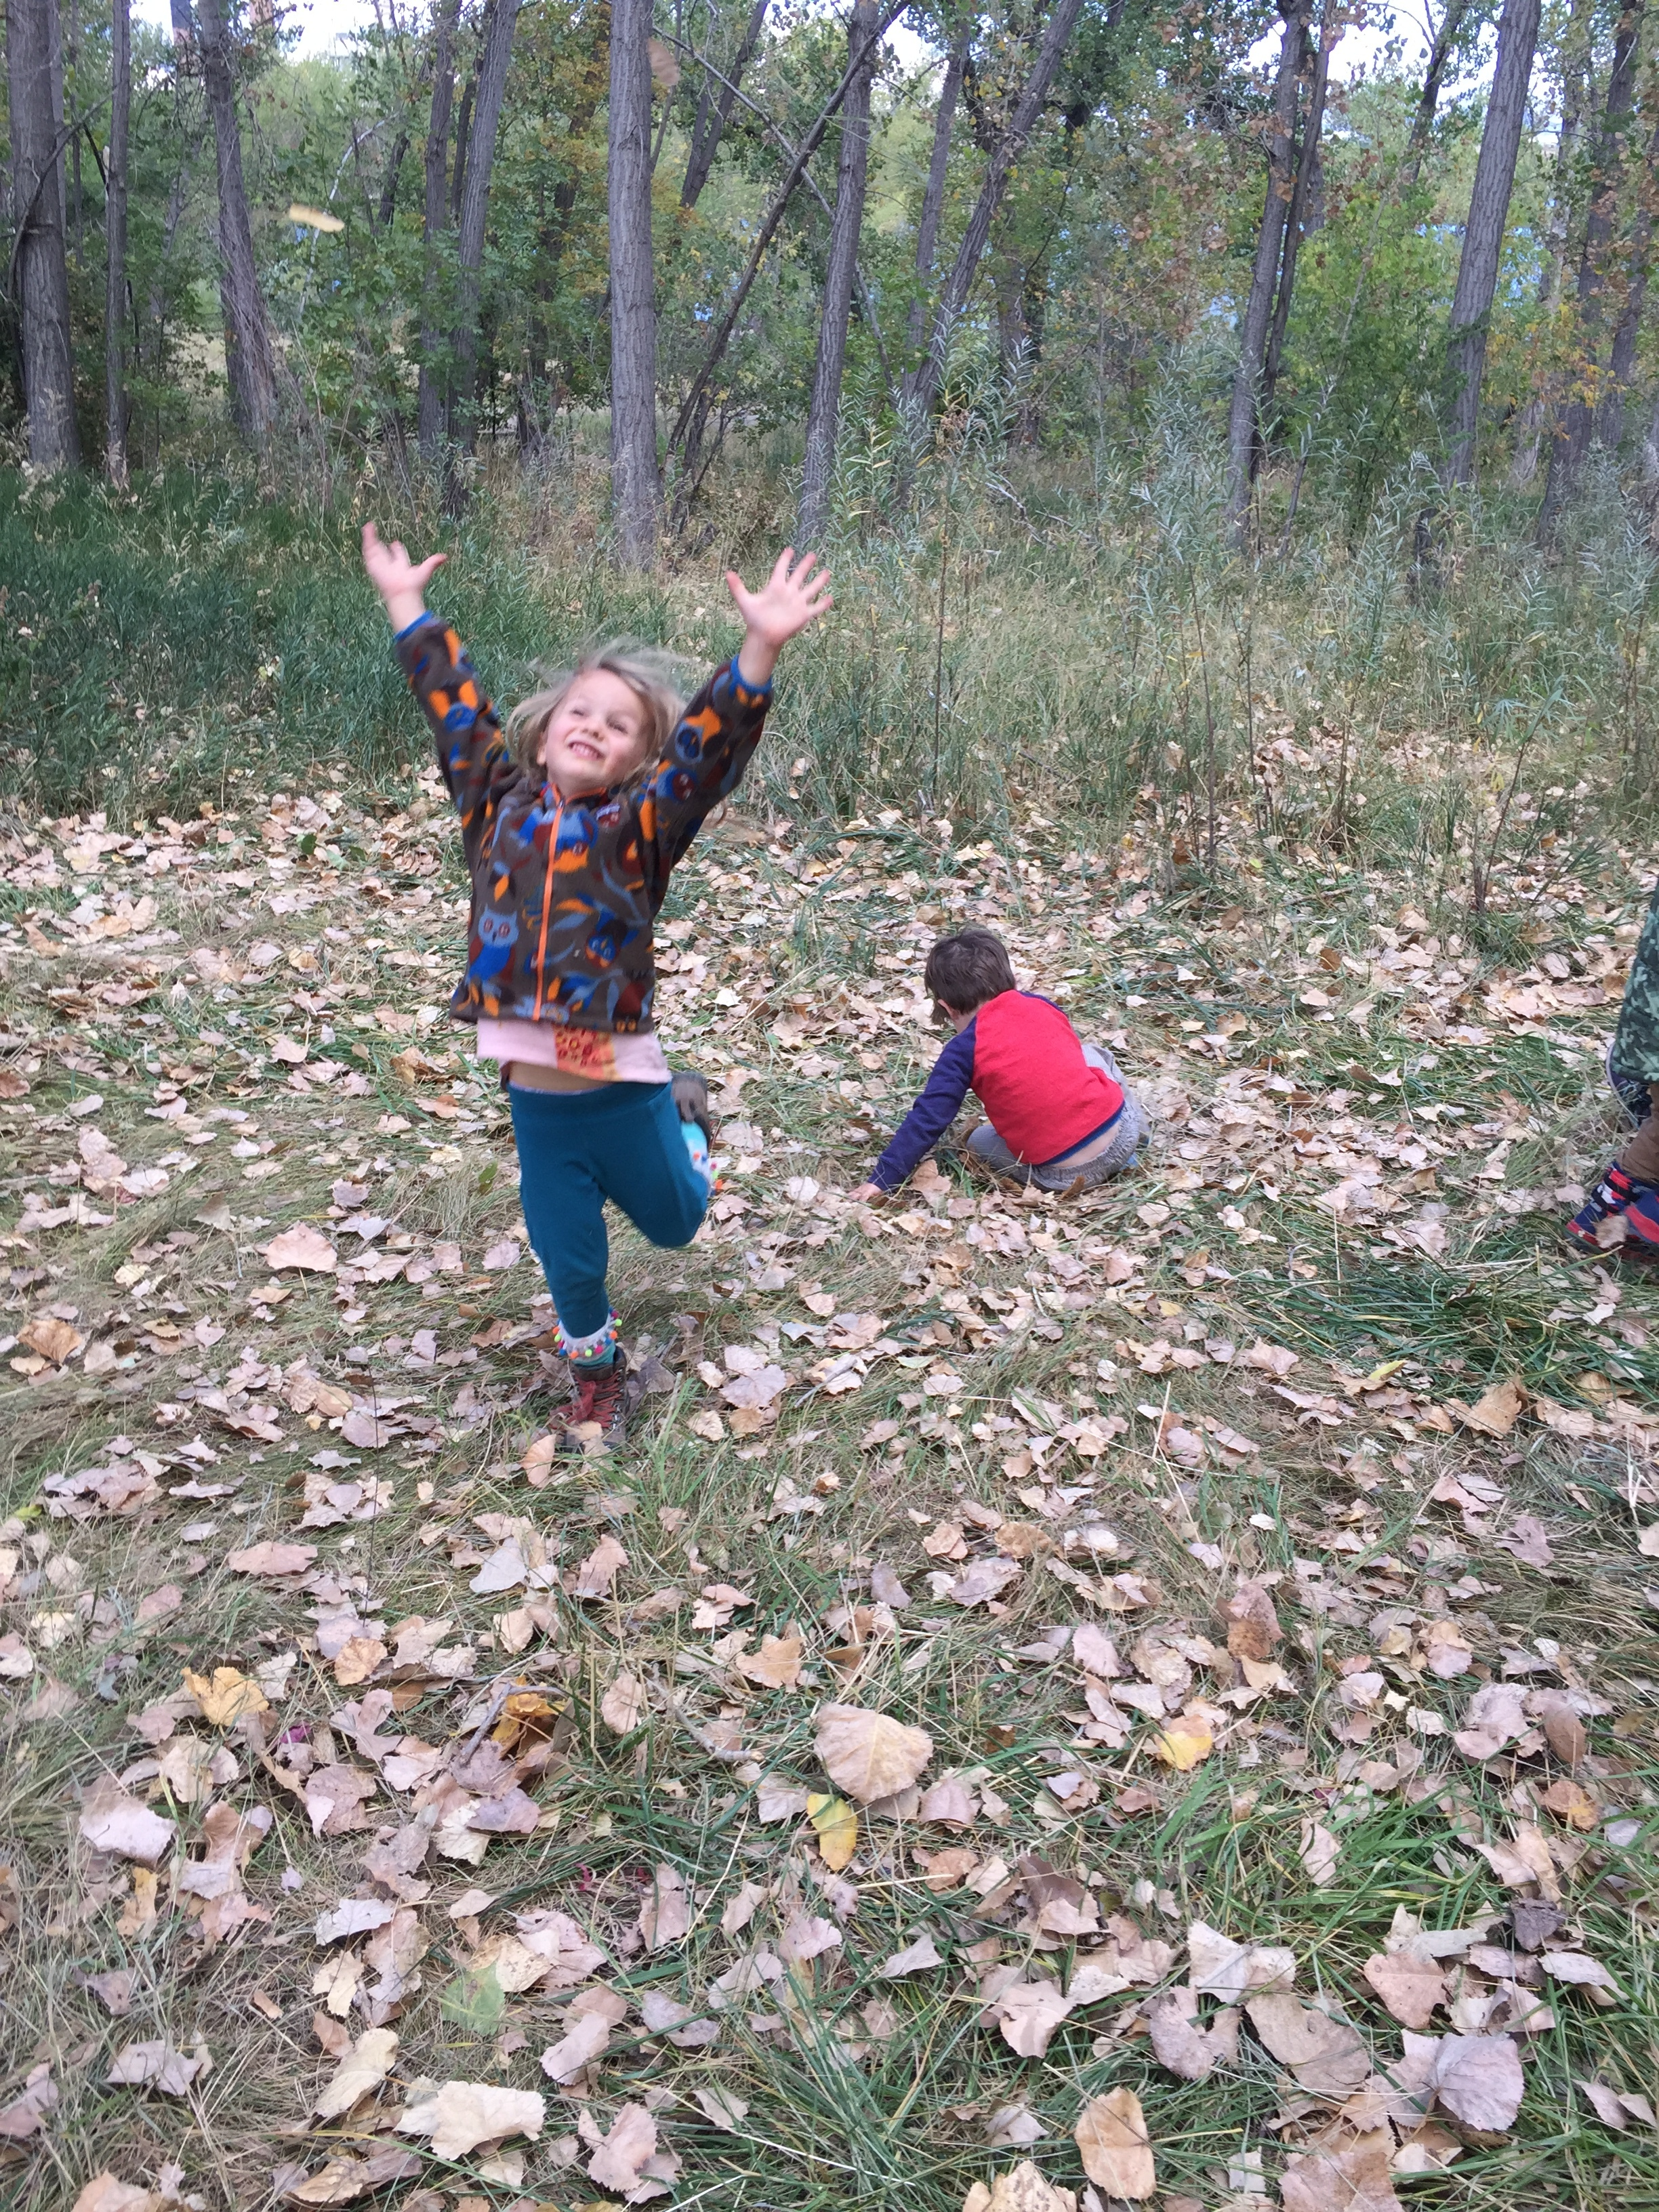 Joyful play is so important! The kids got a healthy dose of joy thanks to our friendly trees dropping their leaves on us.